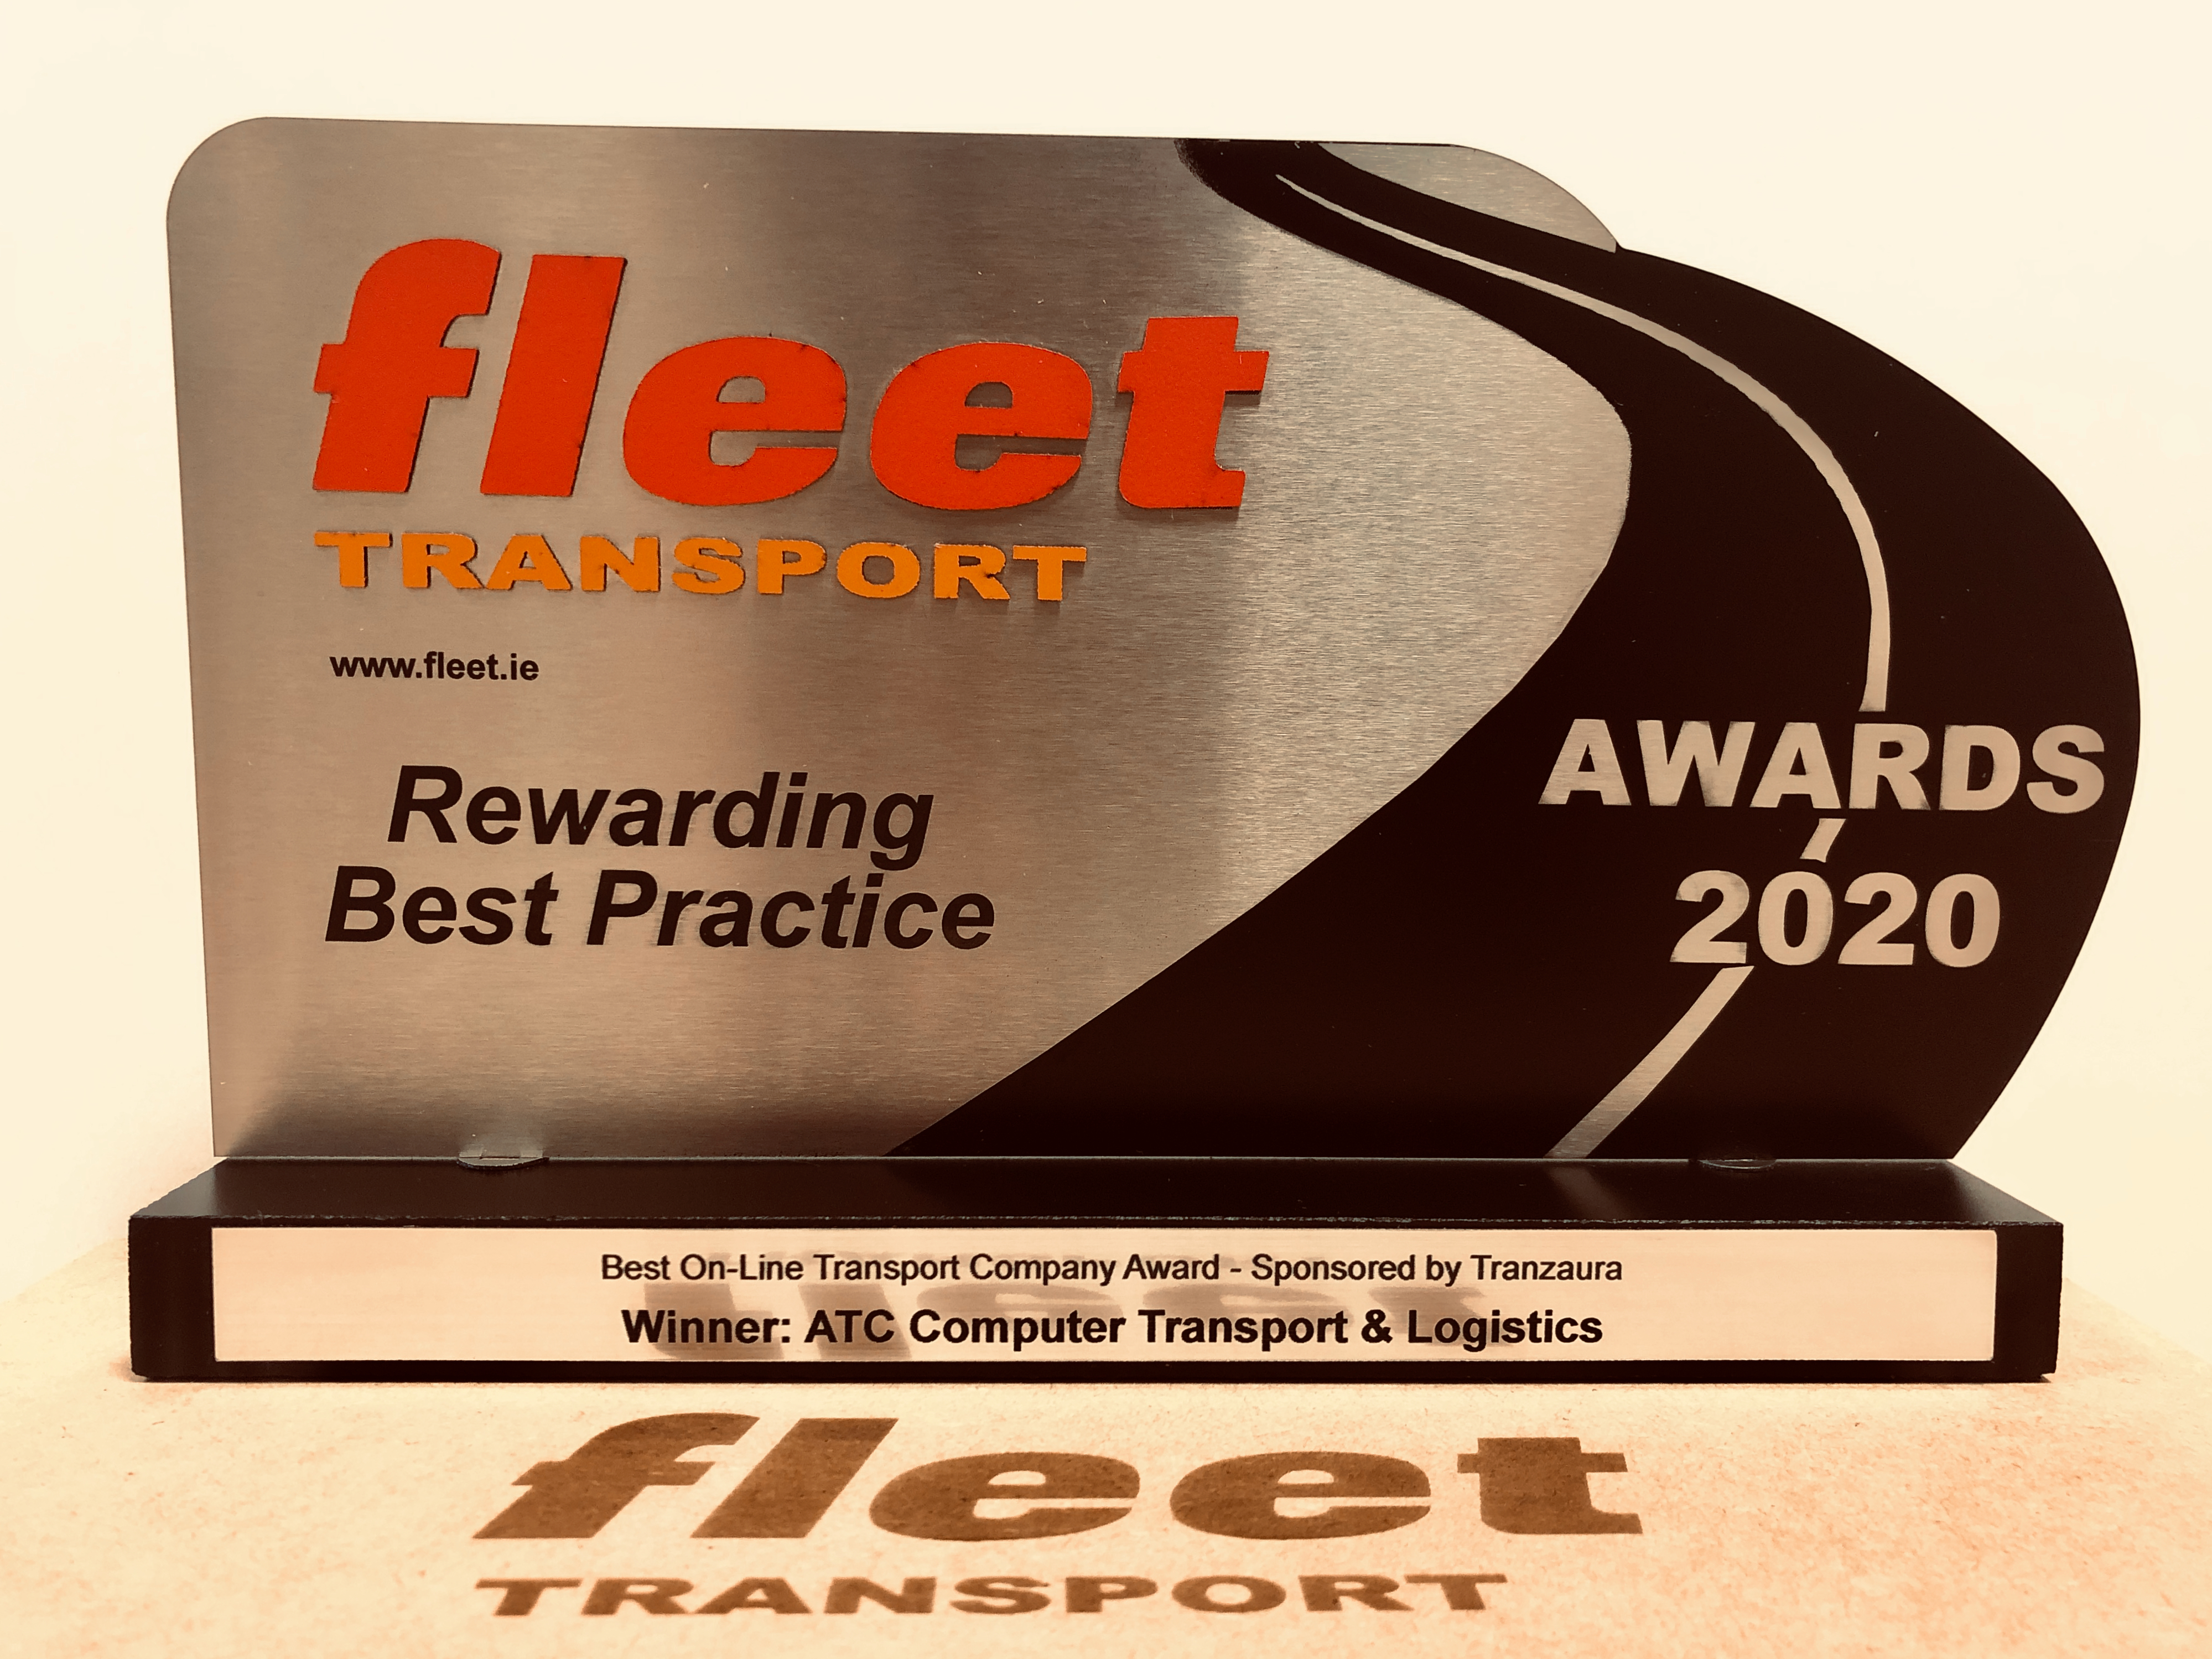 Fleet Transport Award for Best Online Company